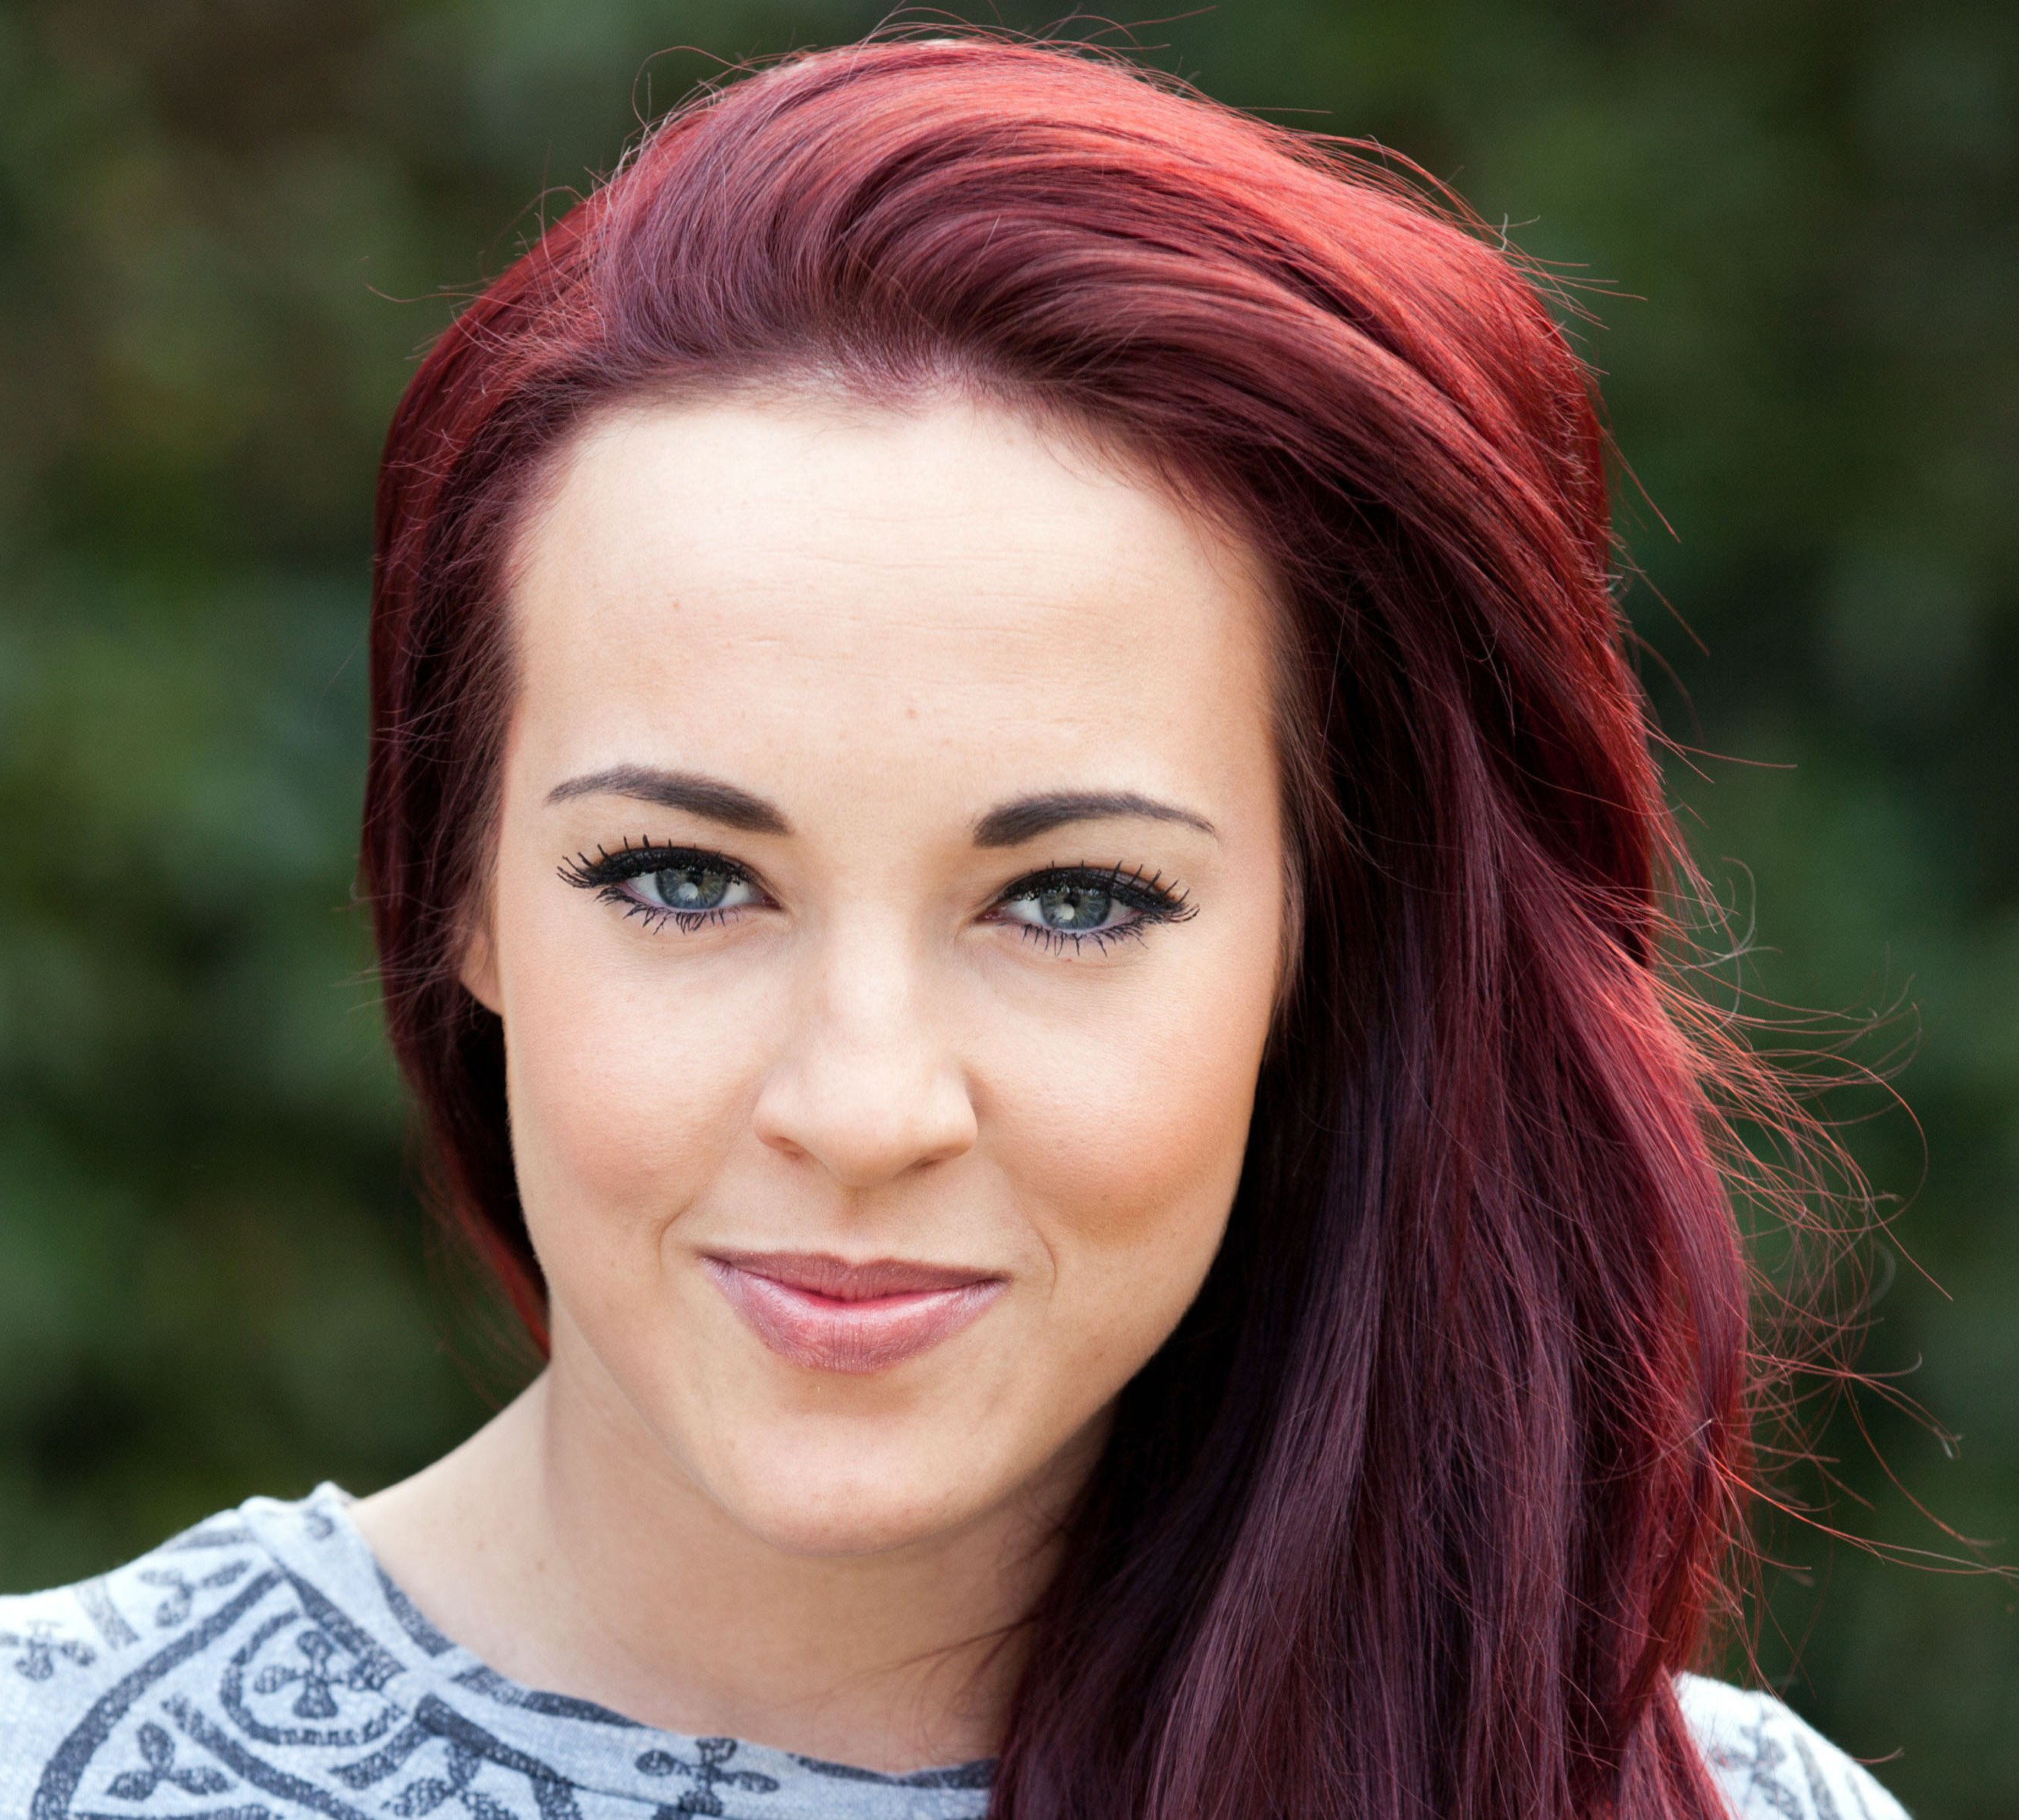 The reason behind Hollyoaks' Stephanie Davis' shock sacking is revealed as she turned up to work drunk